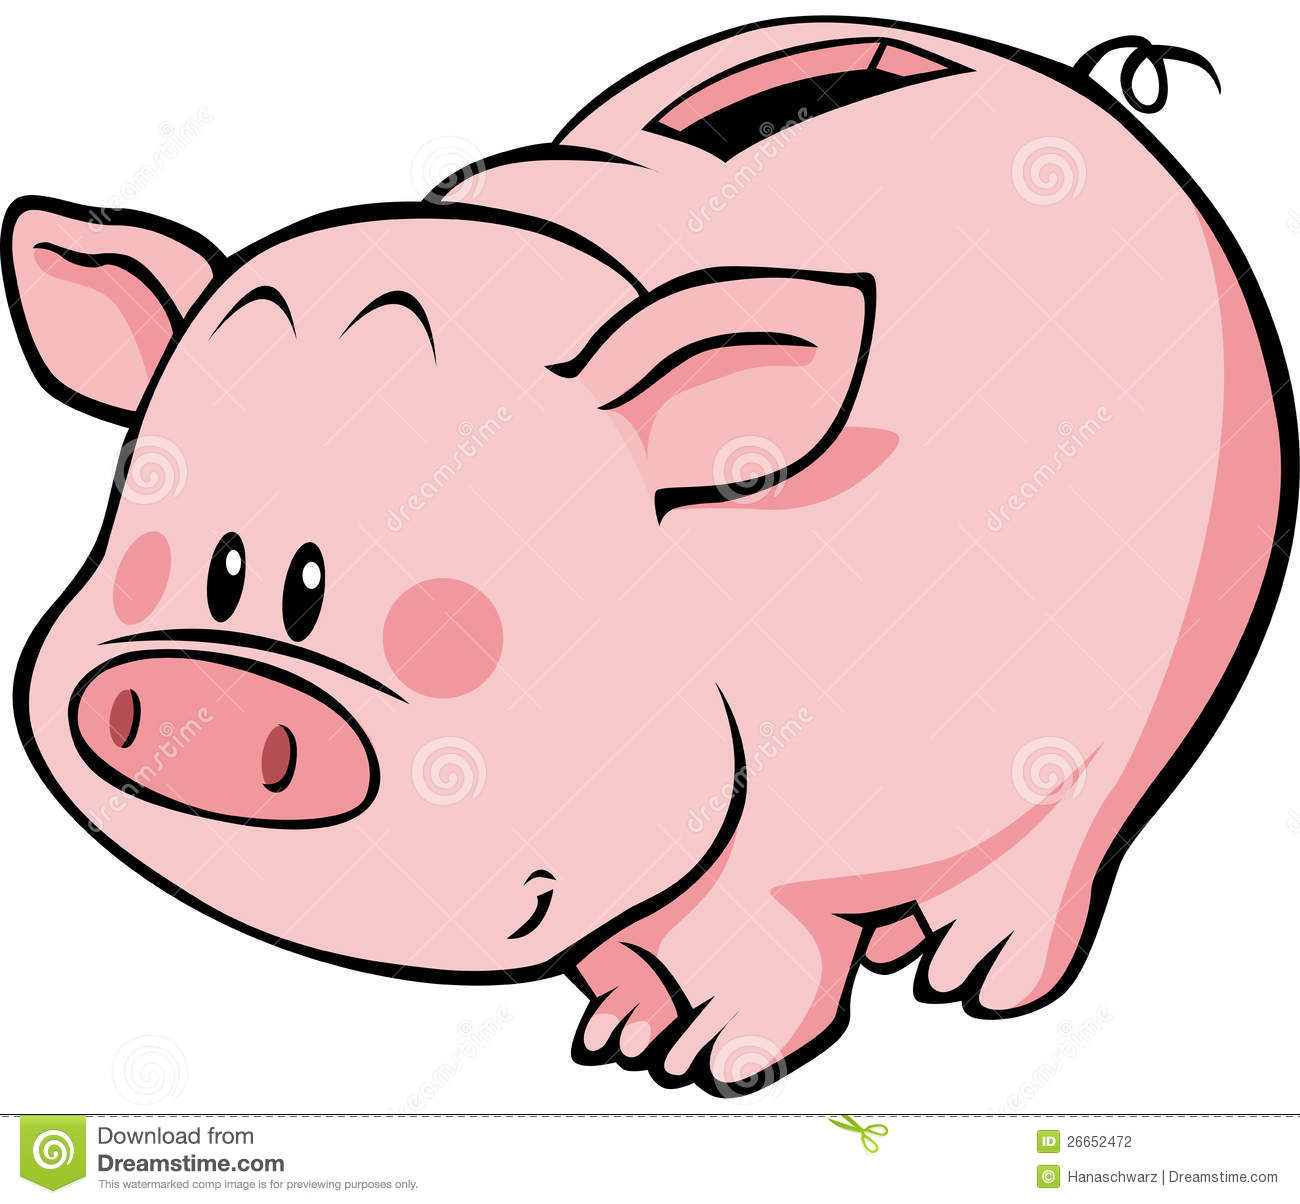 Animated piggy bank clipart graphic free stock Piggy Clipart - Clipart Kid graphic free stock